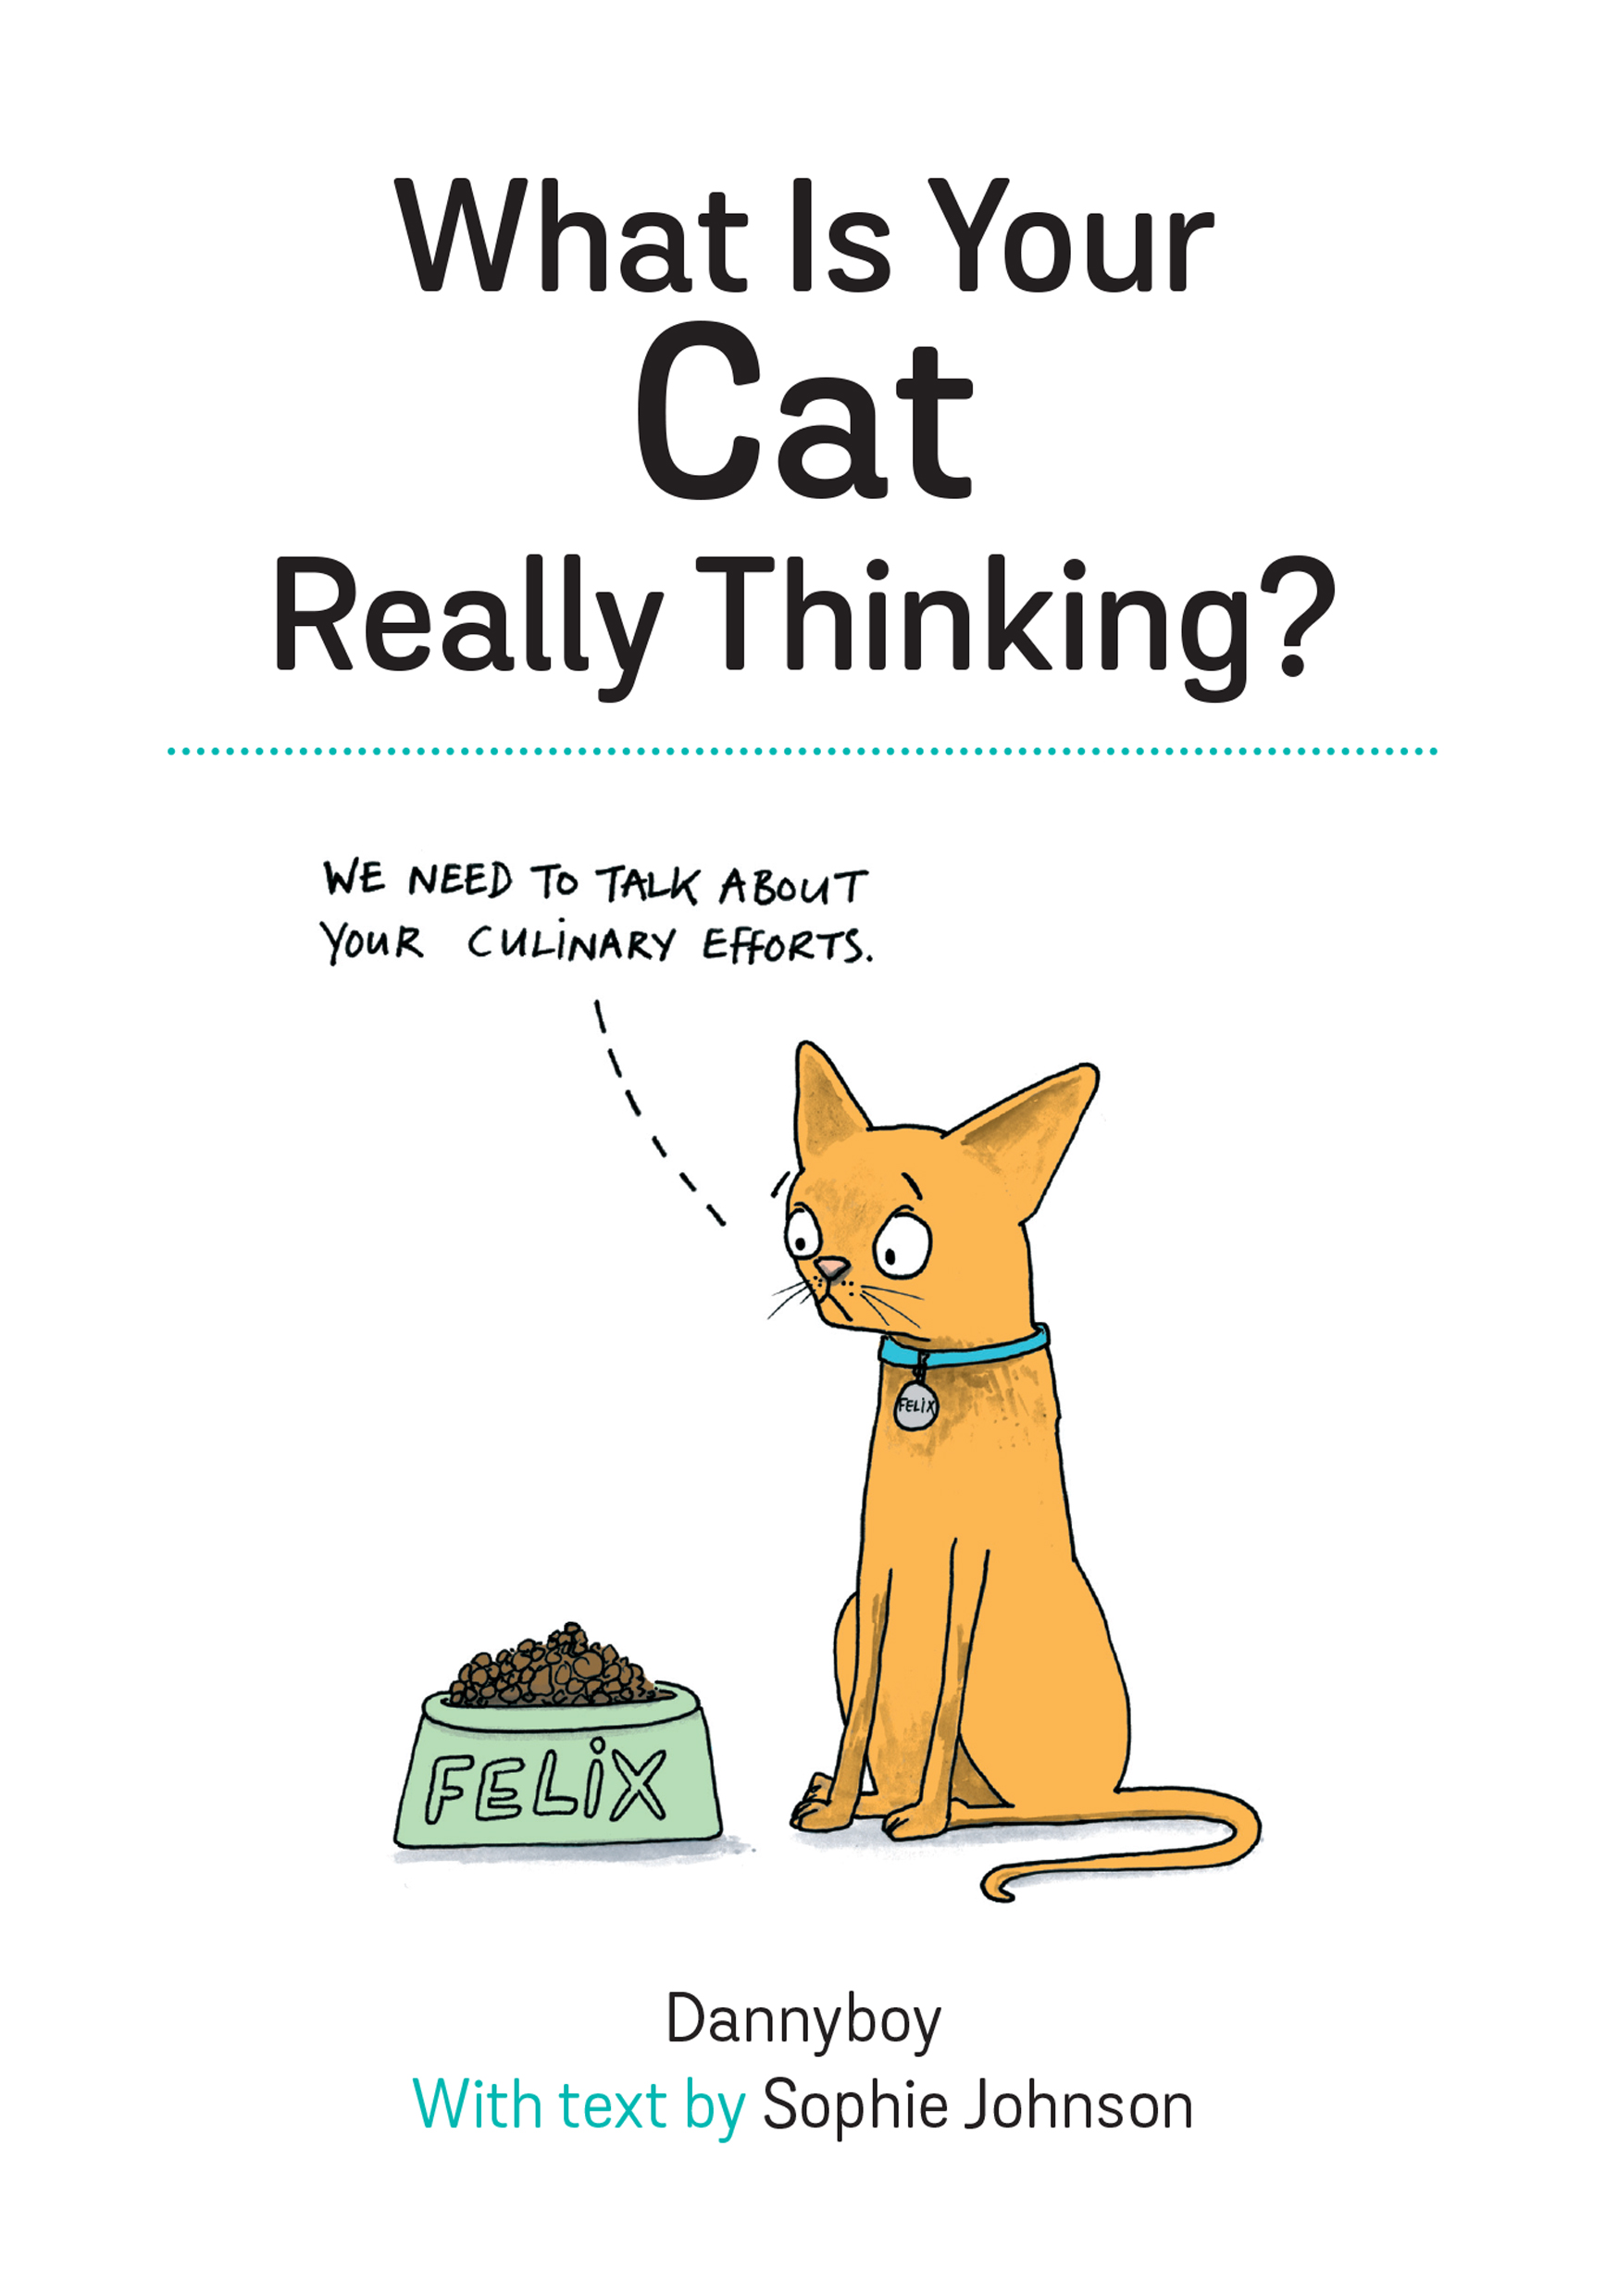 What is your Cat Really Thinking? (published by Summersdale 2017)